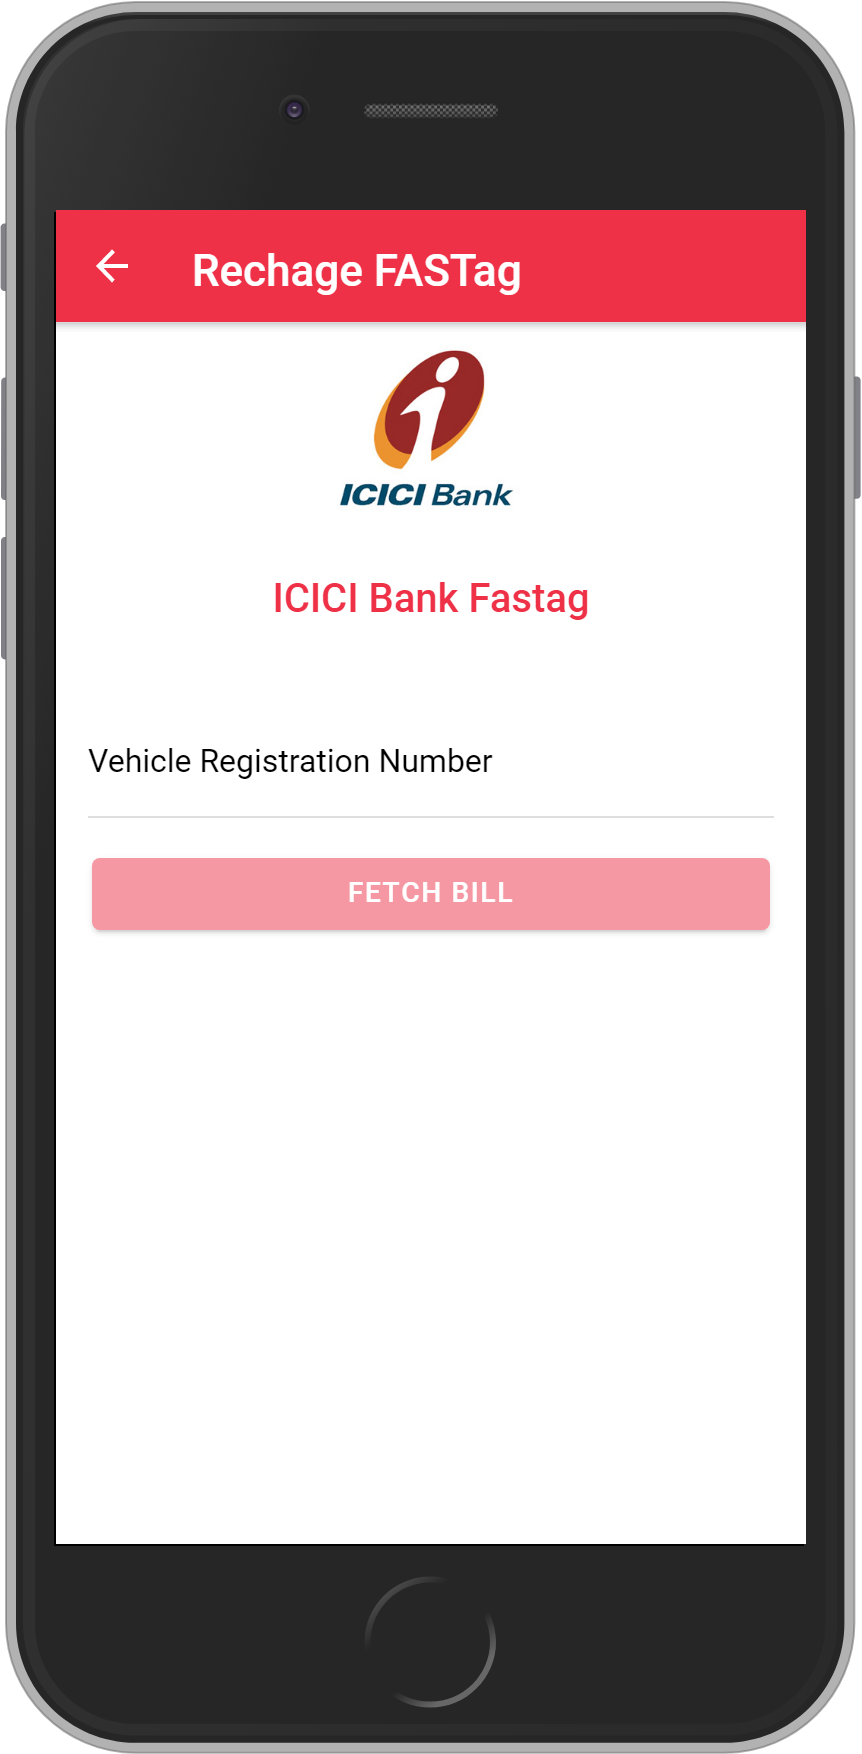 Get UNLIMITED <b>0.1%</b> CASHBACK on ICICI Bank Fastag Recharge.